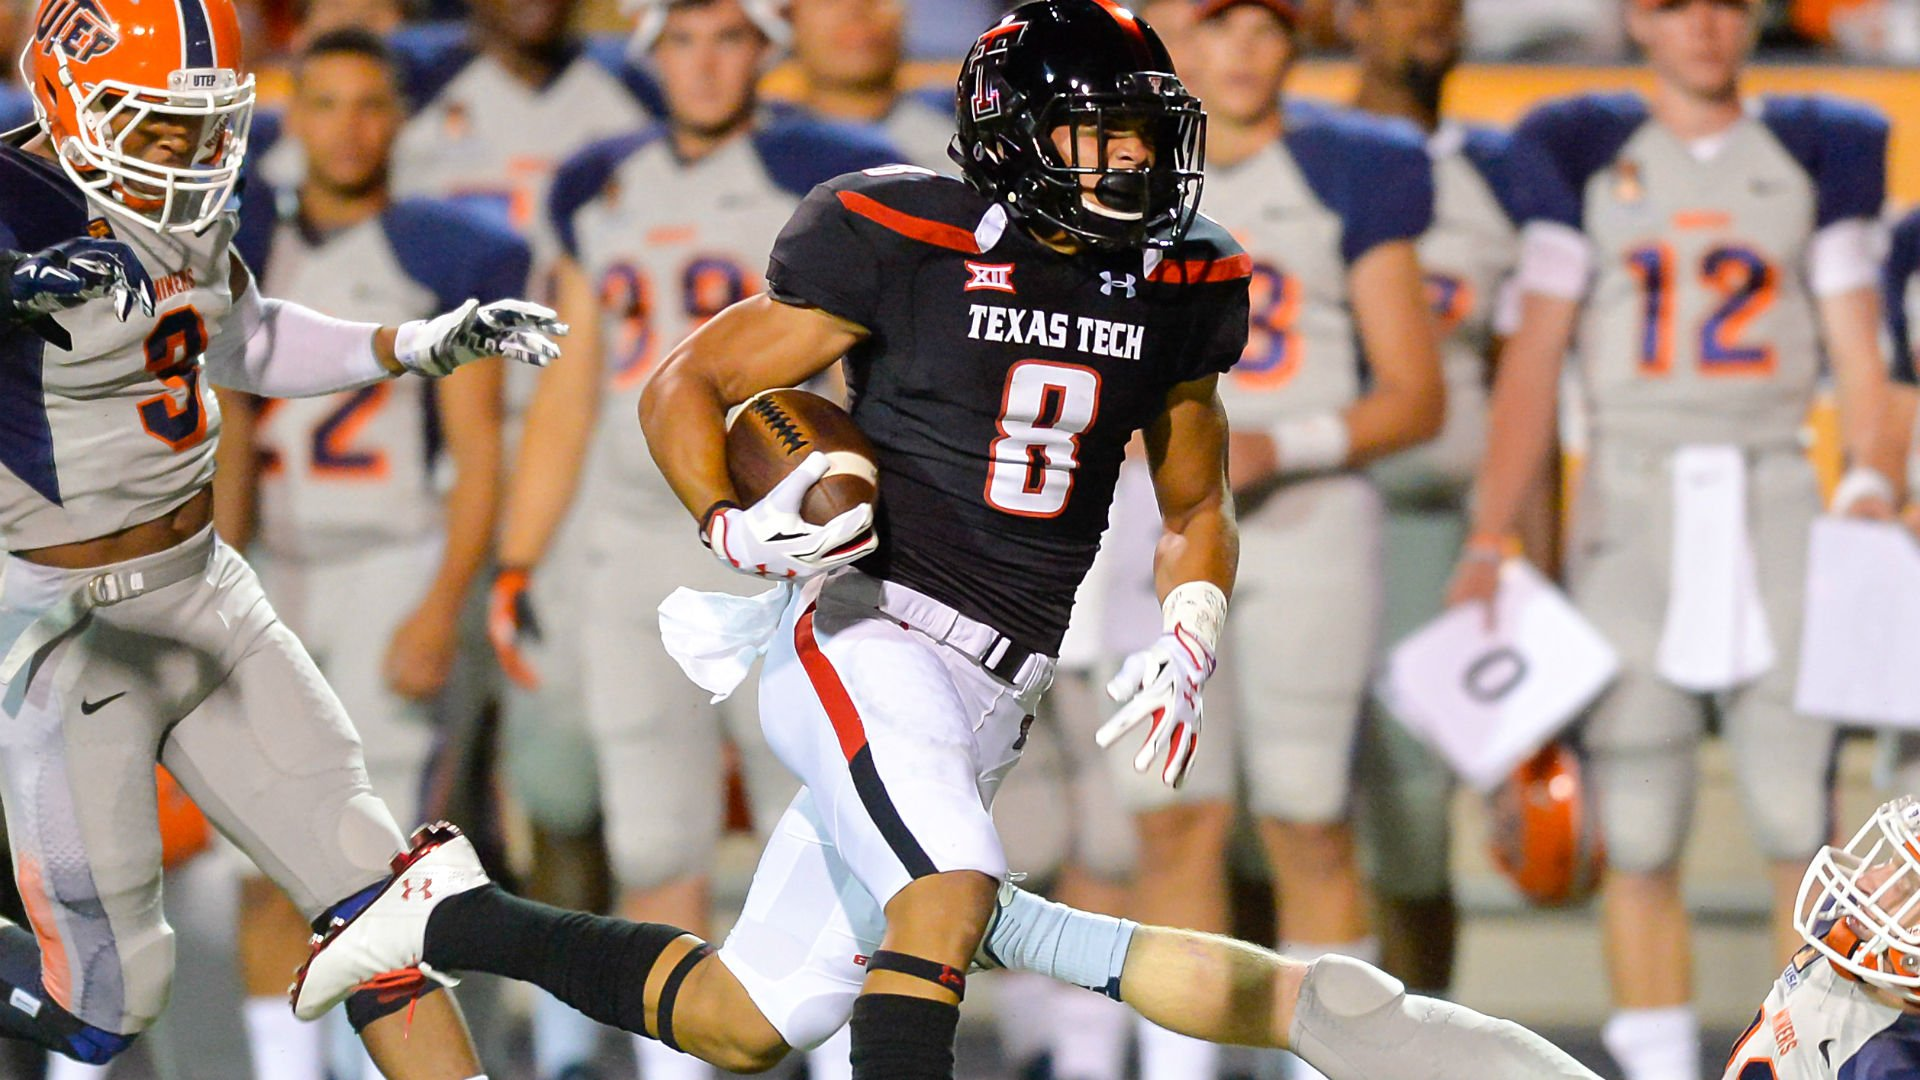 Get the latest Texas Tech Red Raiders news scores stats standings rumors and more from ESPN